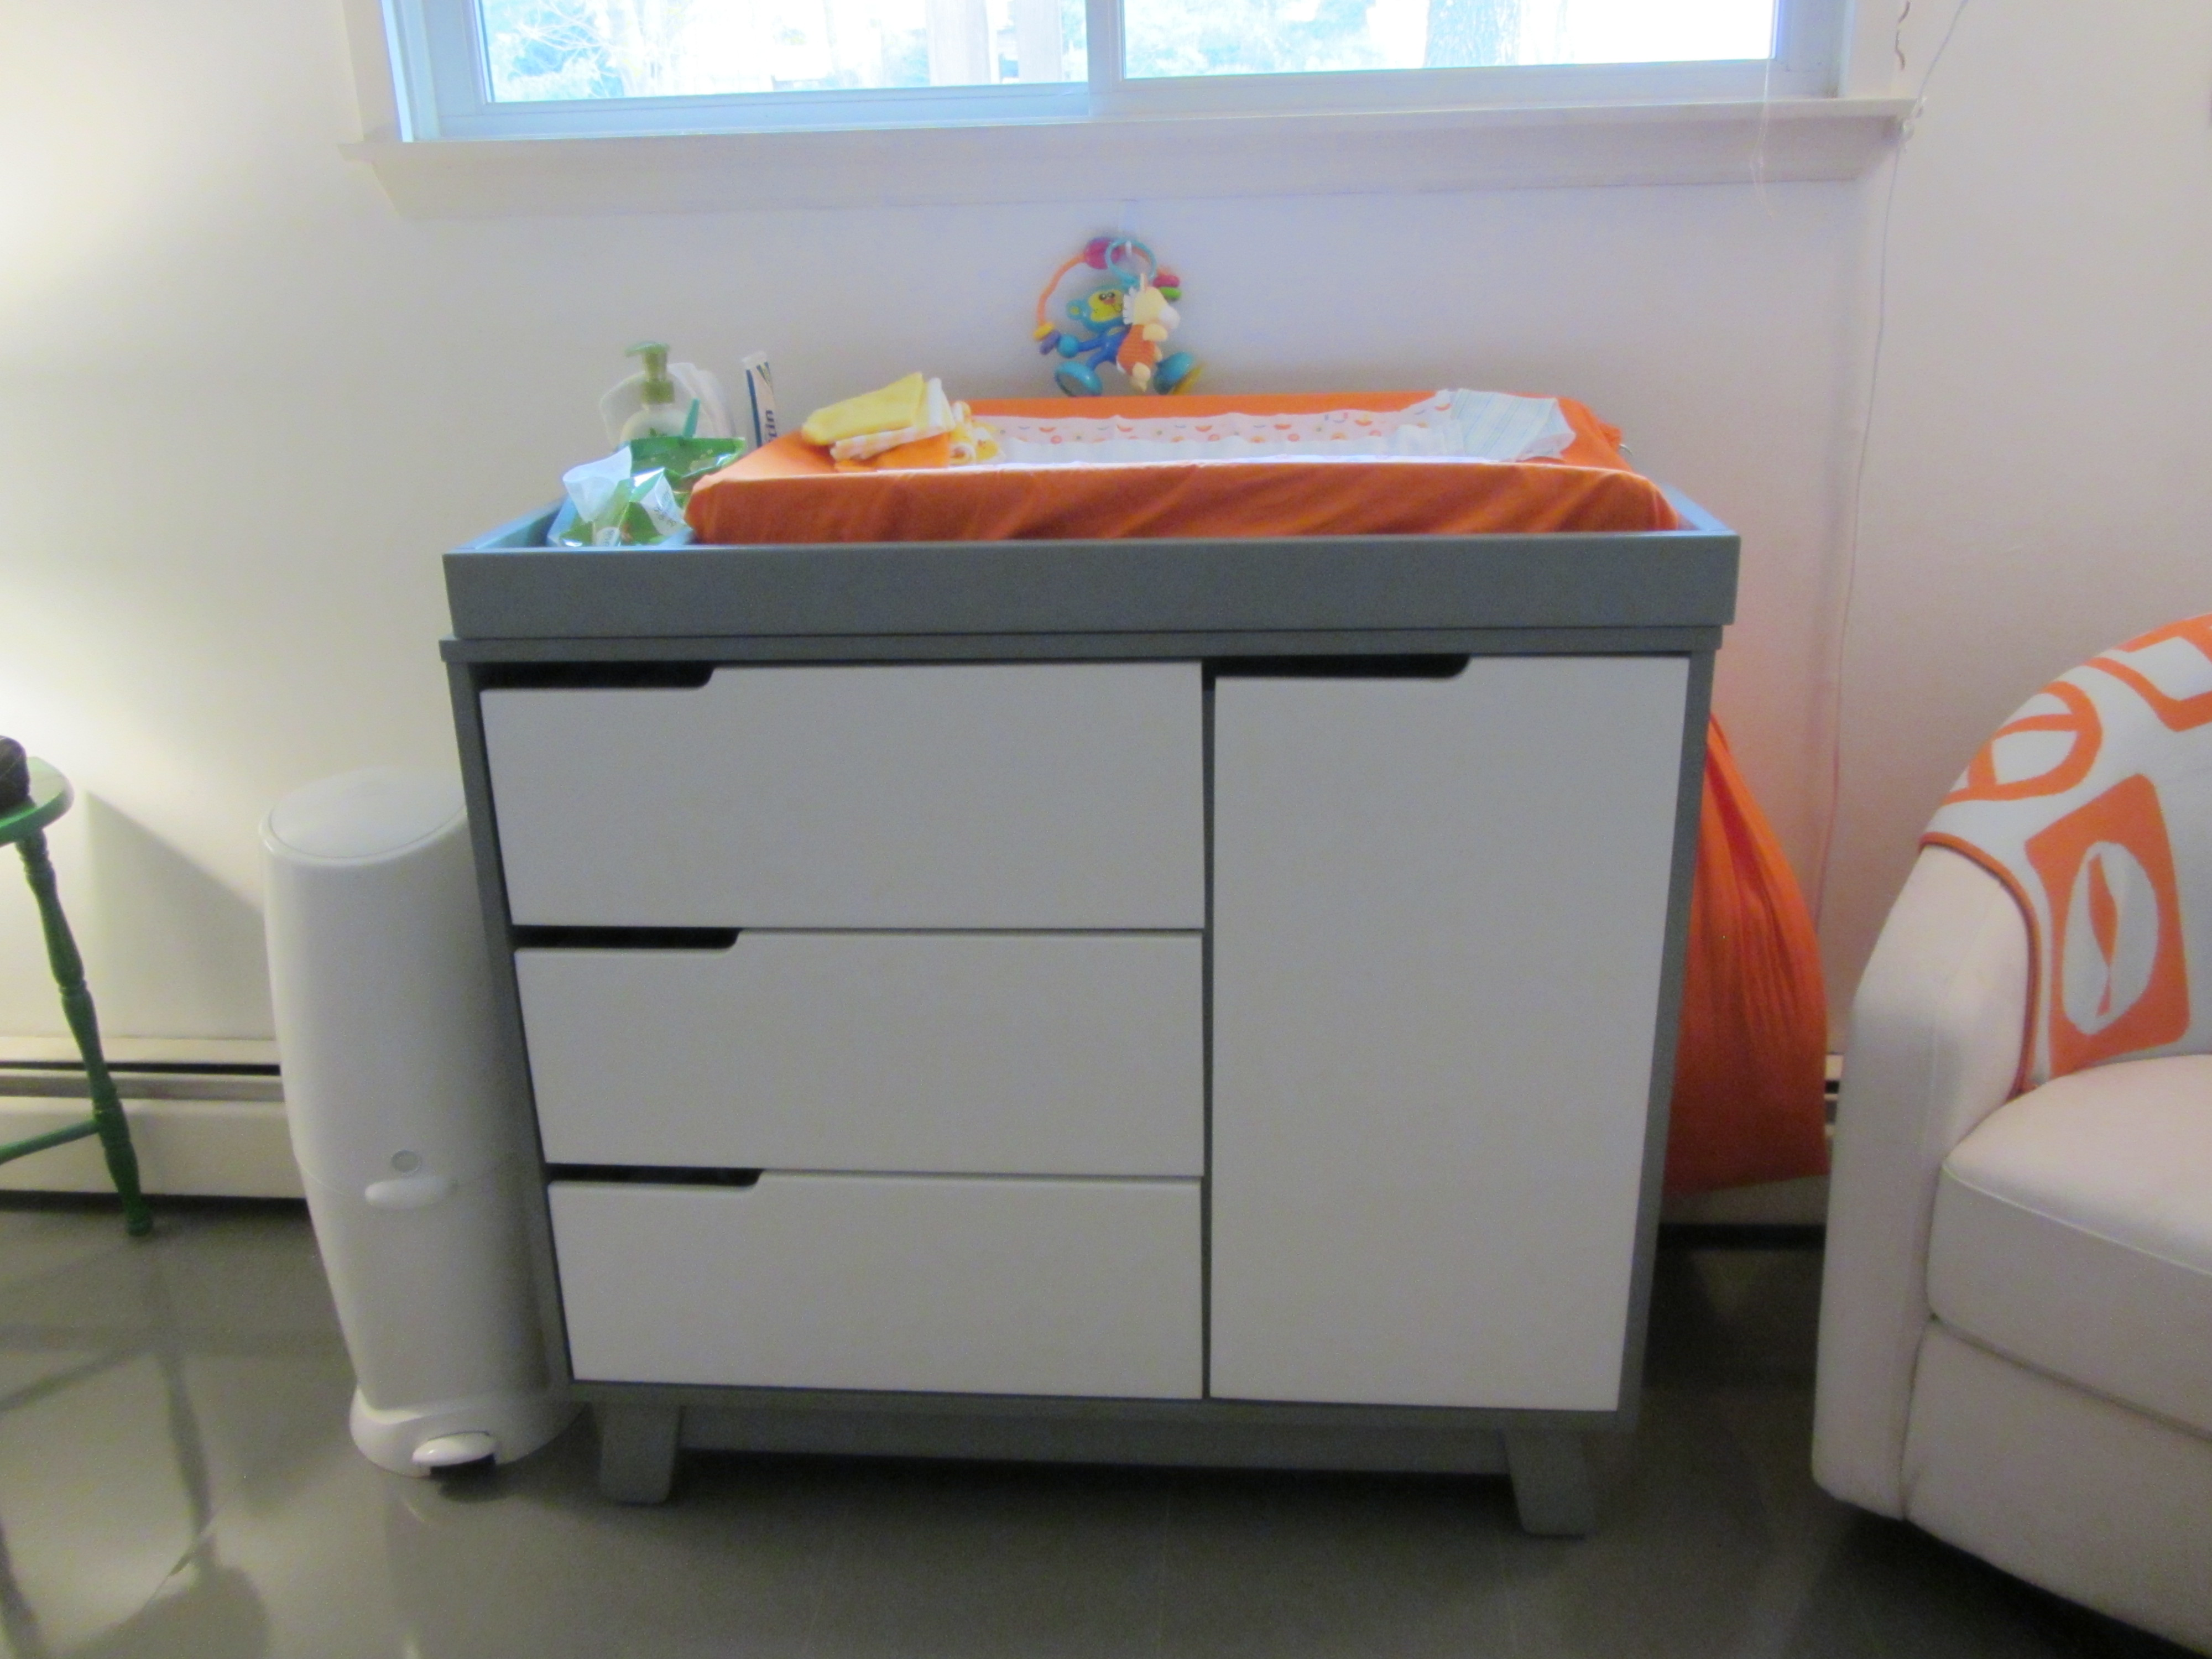 babyletto hudson crib and changing table  creative ideas of baby  - babyletto hudson changer dresser espressowhite